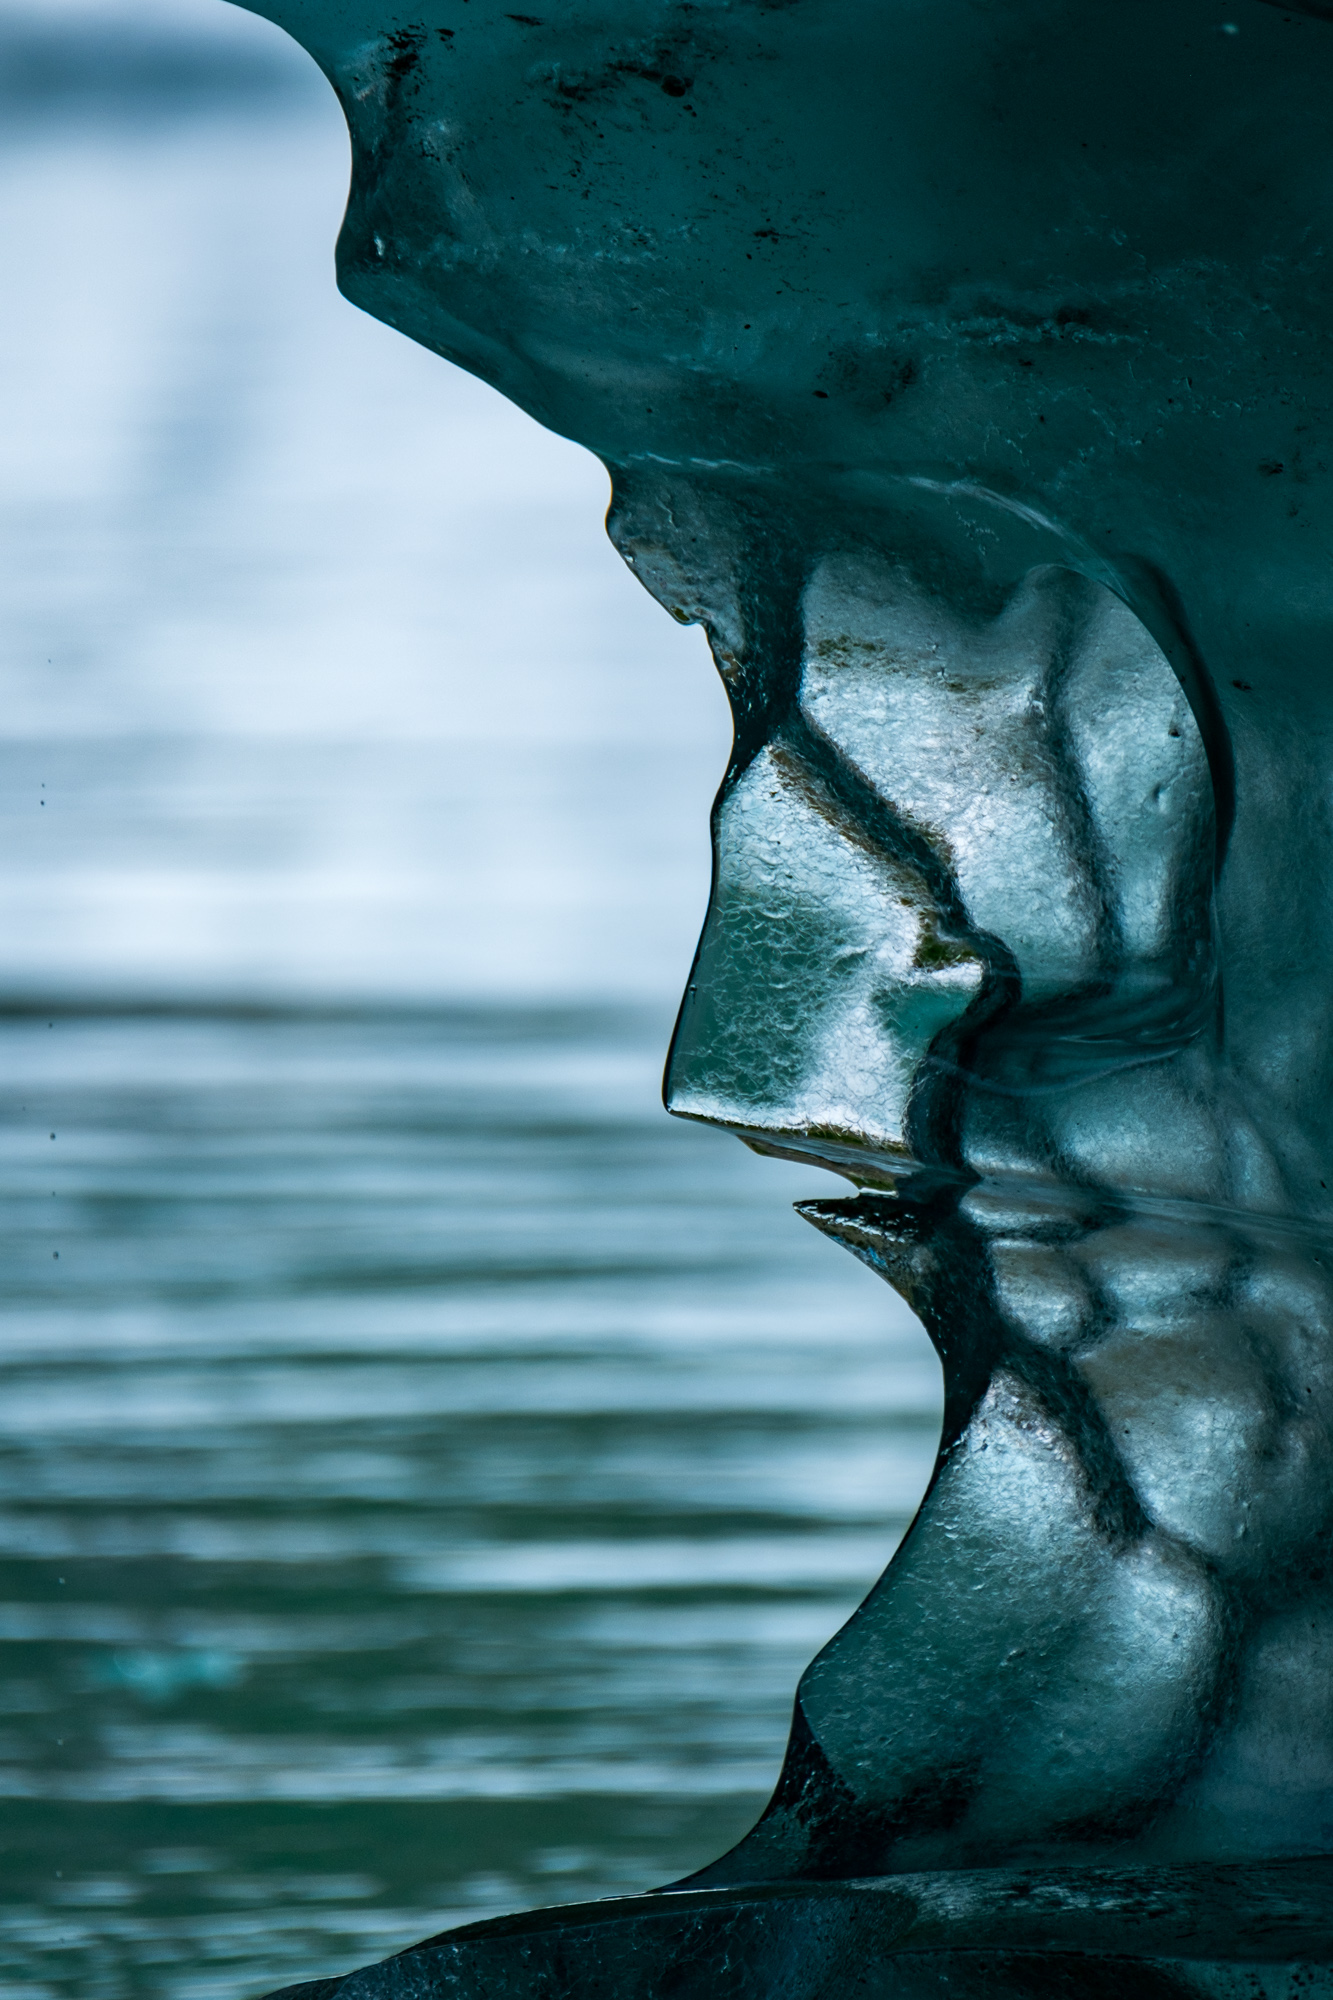 Do you see a face in the ice?